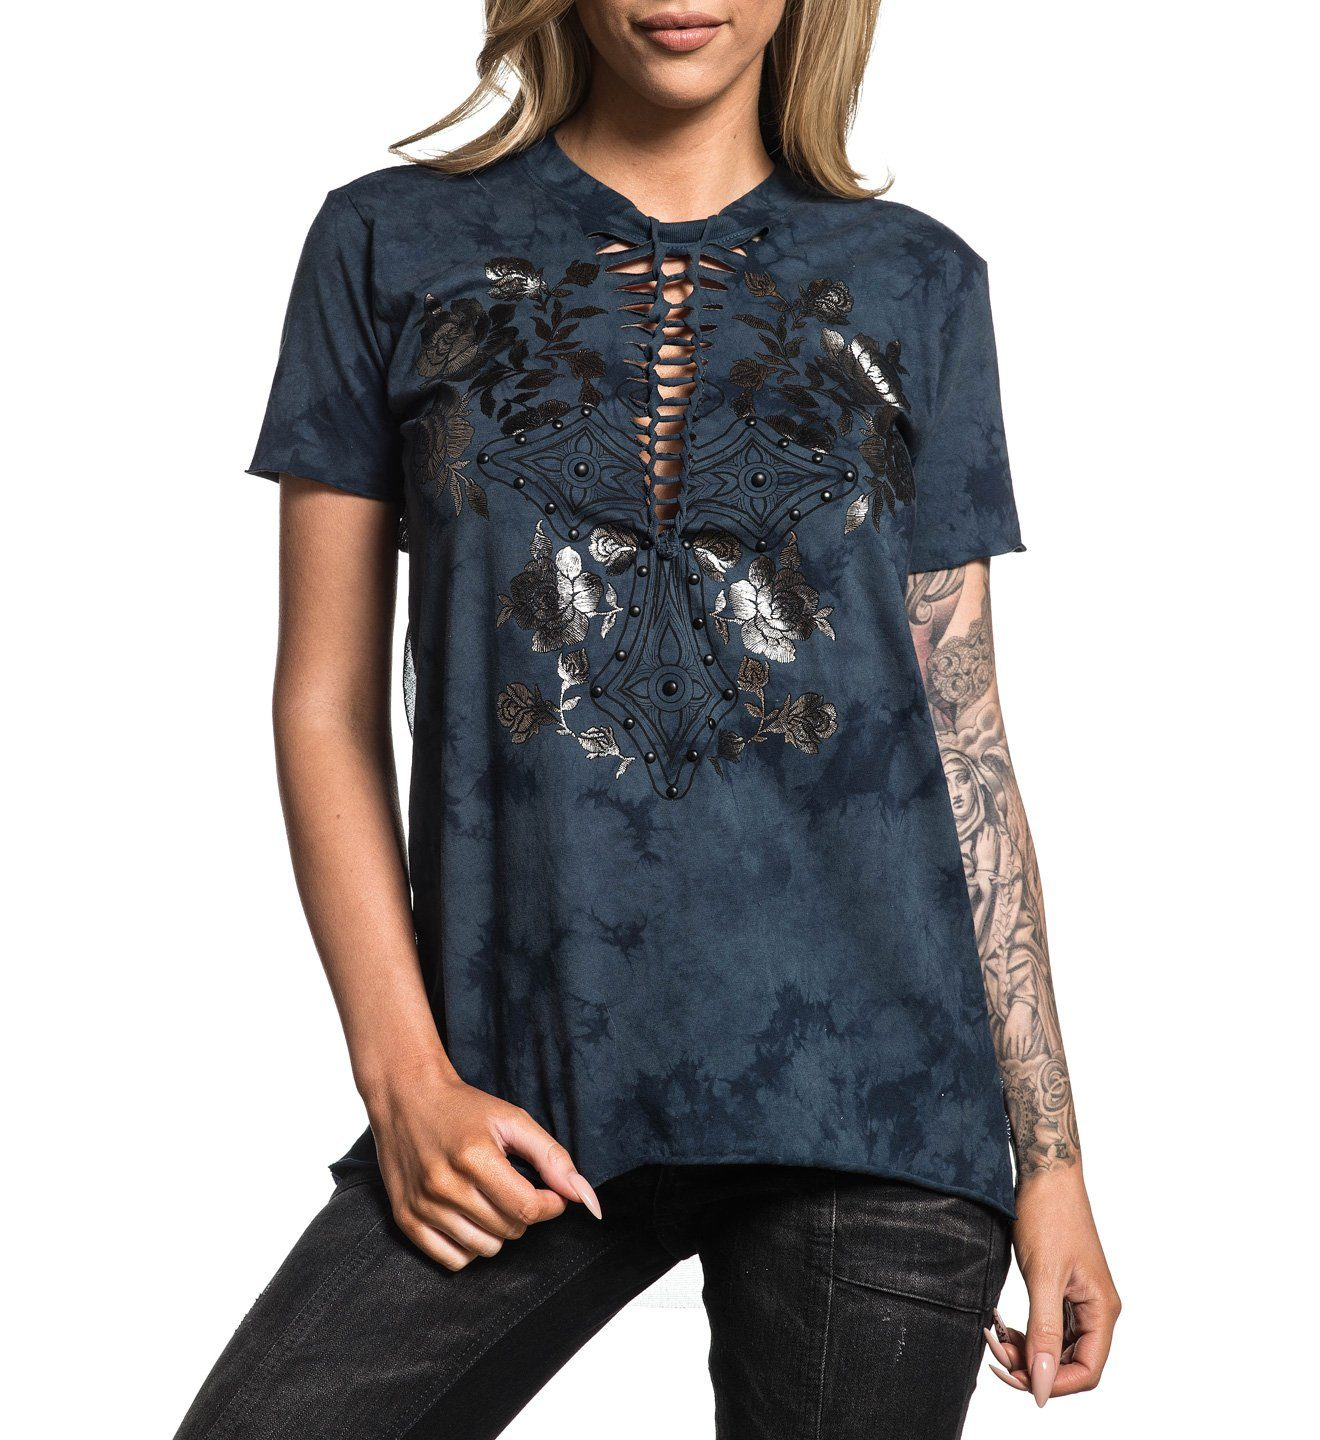 Womens Short Sleeve Tees - Bella